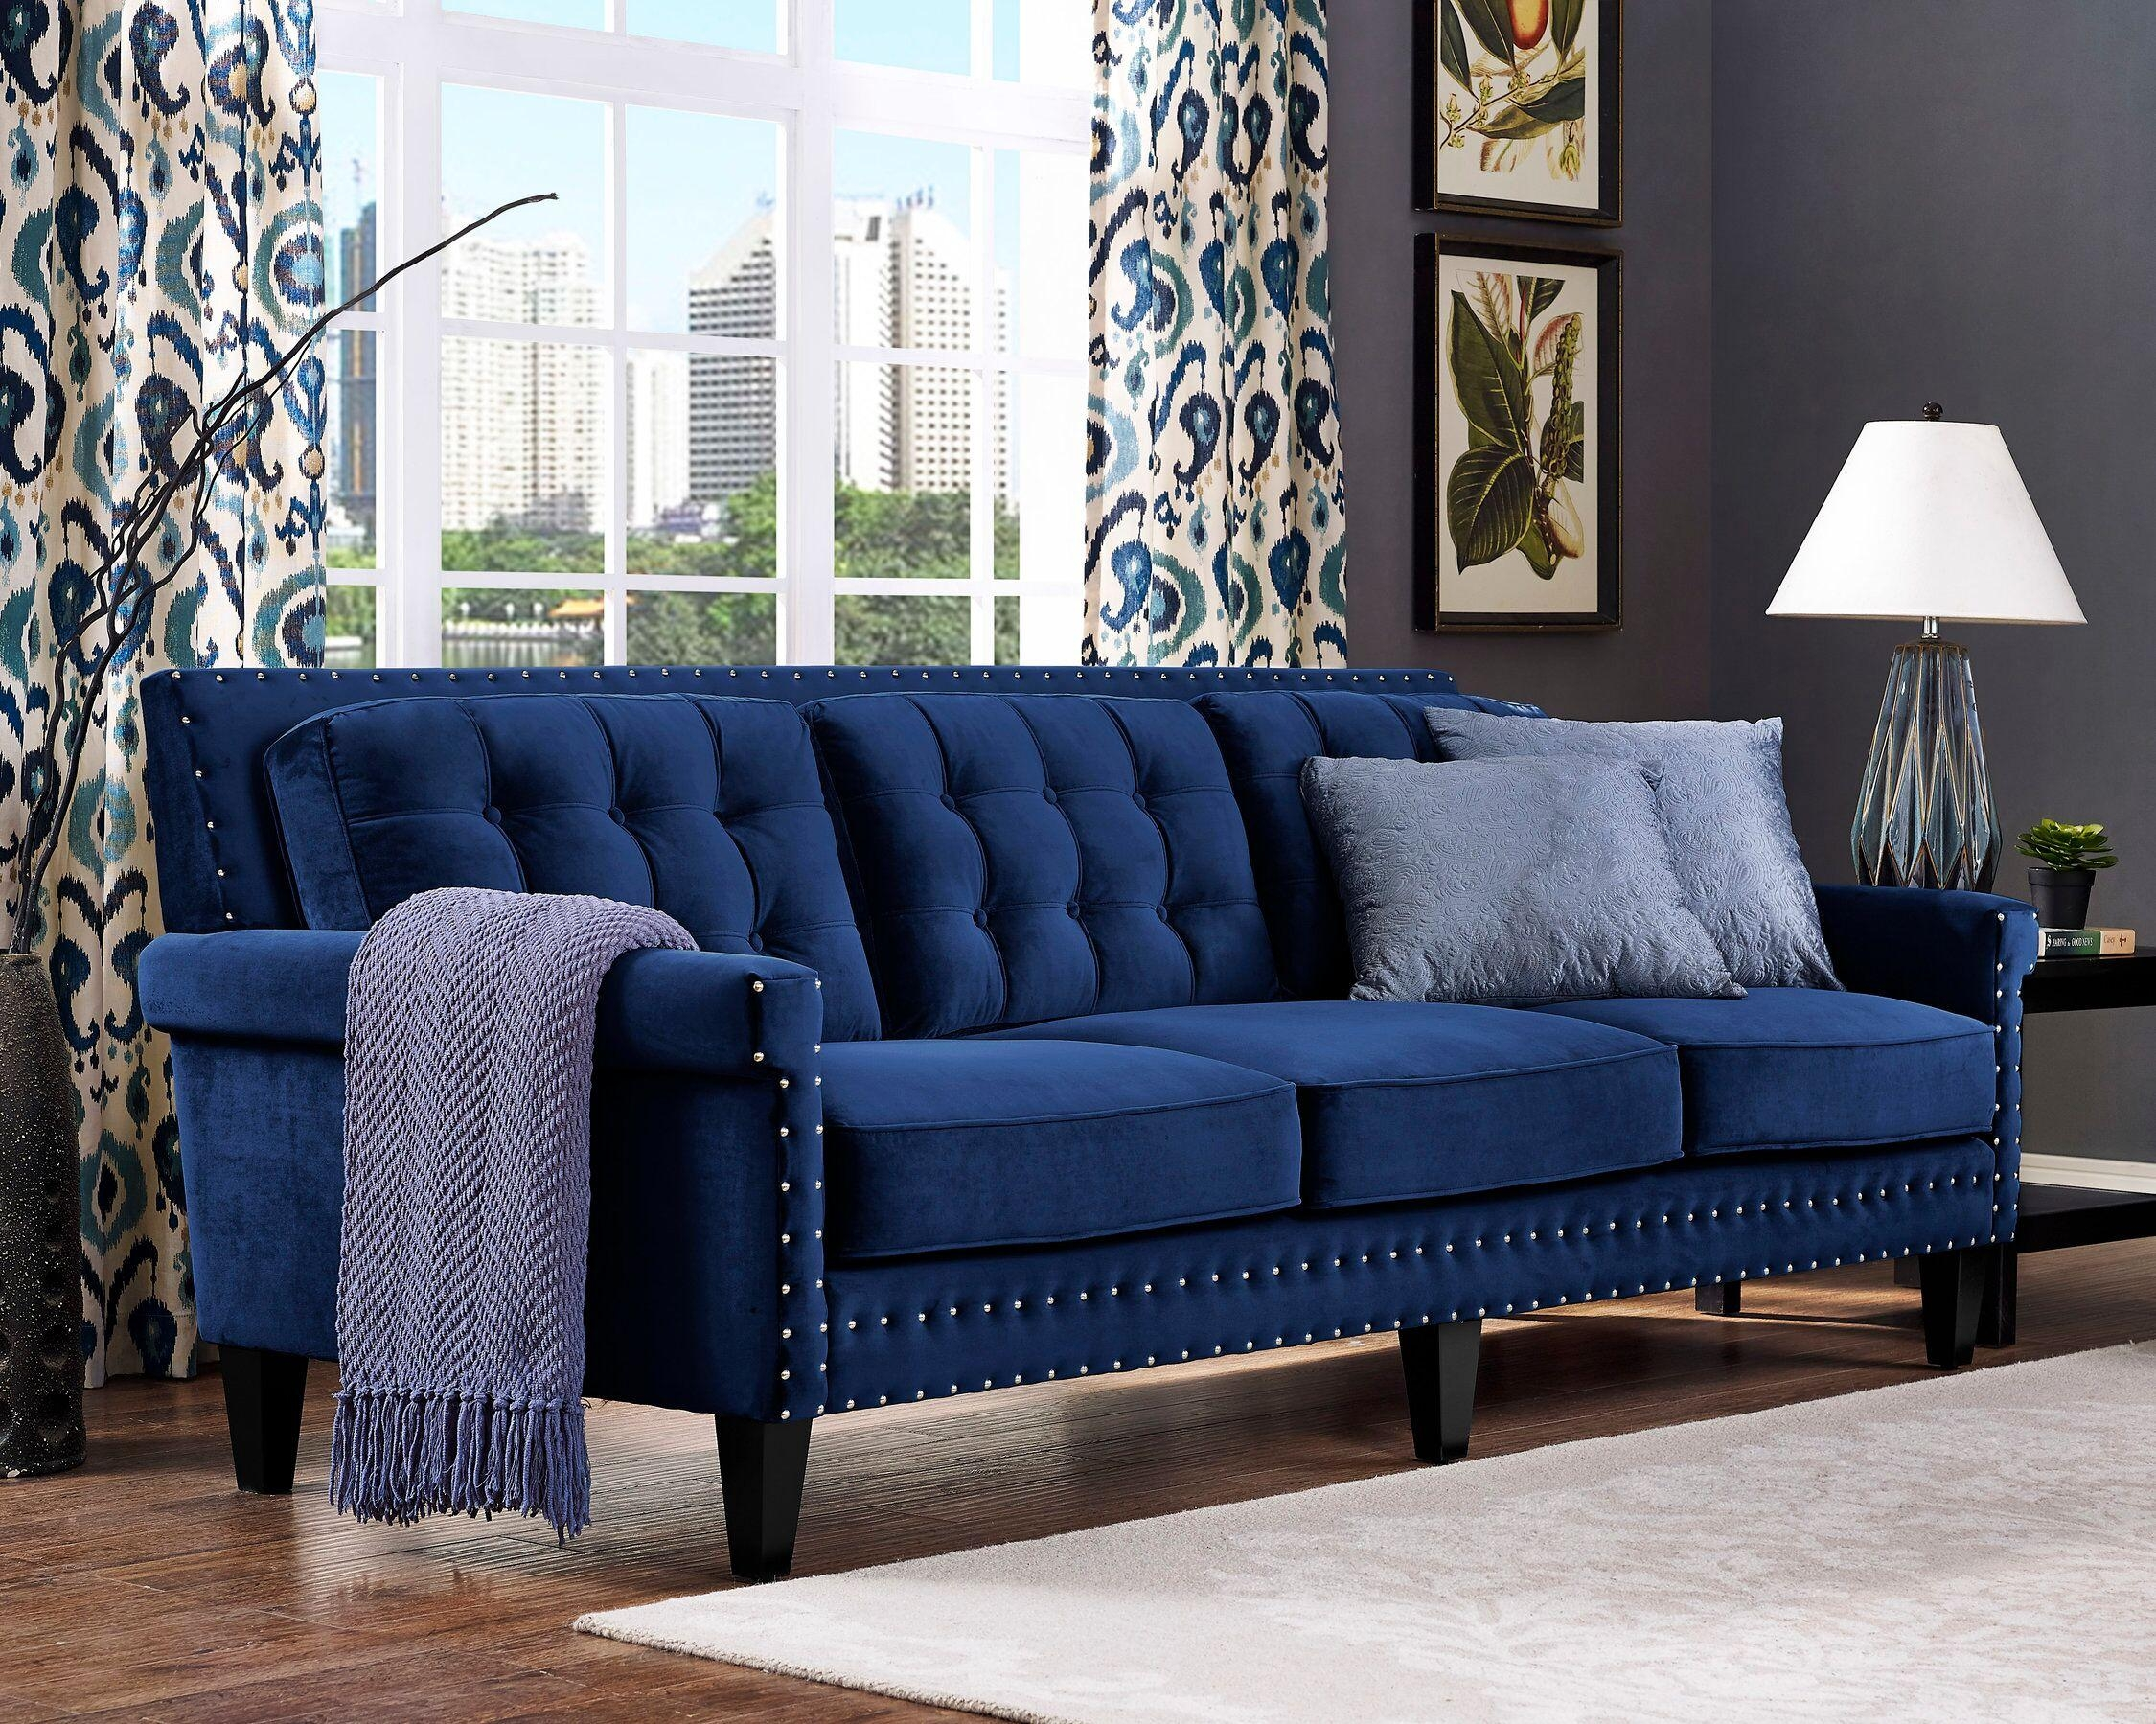 Elegant Blue Tufted Sofa 82 For Living Room Sofa Ideas With Blue For Blue Tufted Sofas (Image 4 of 22)